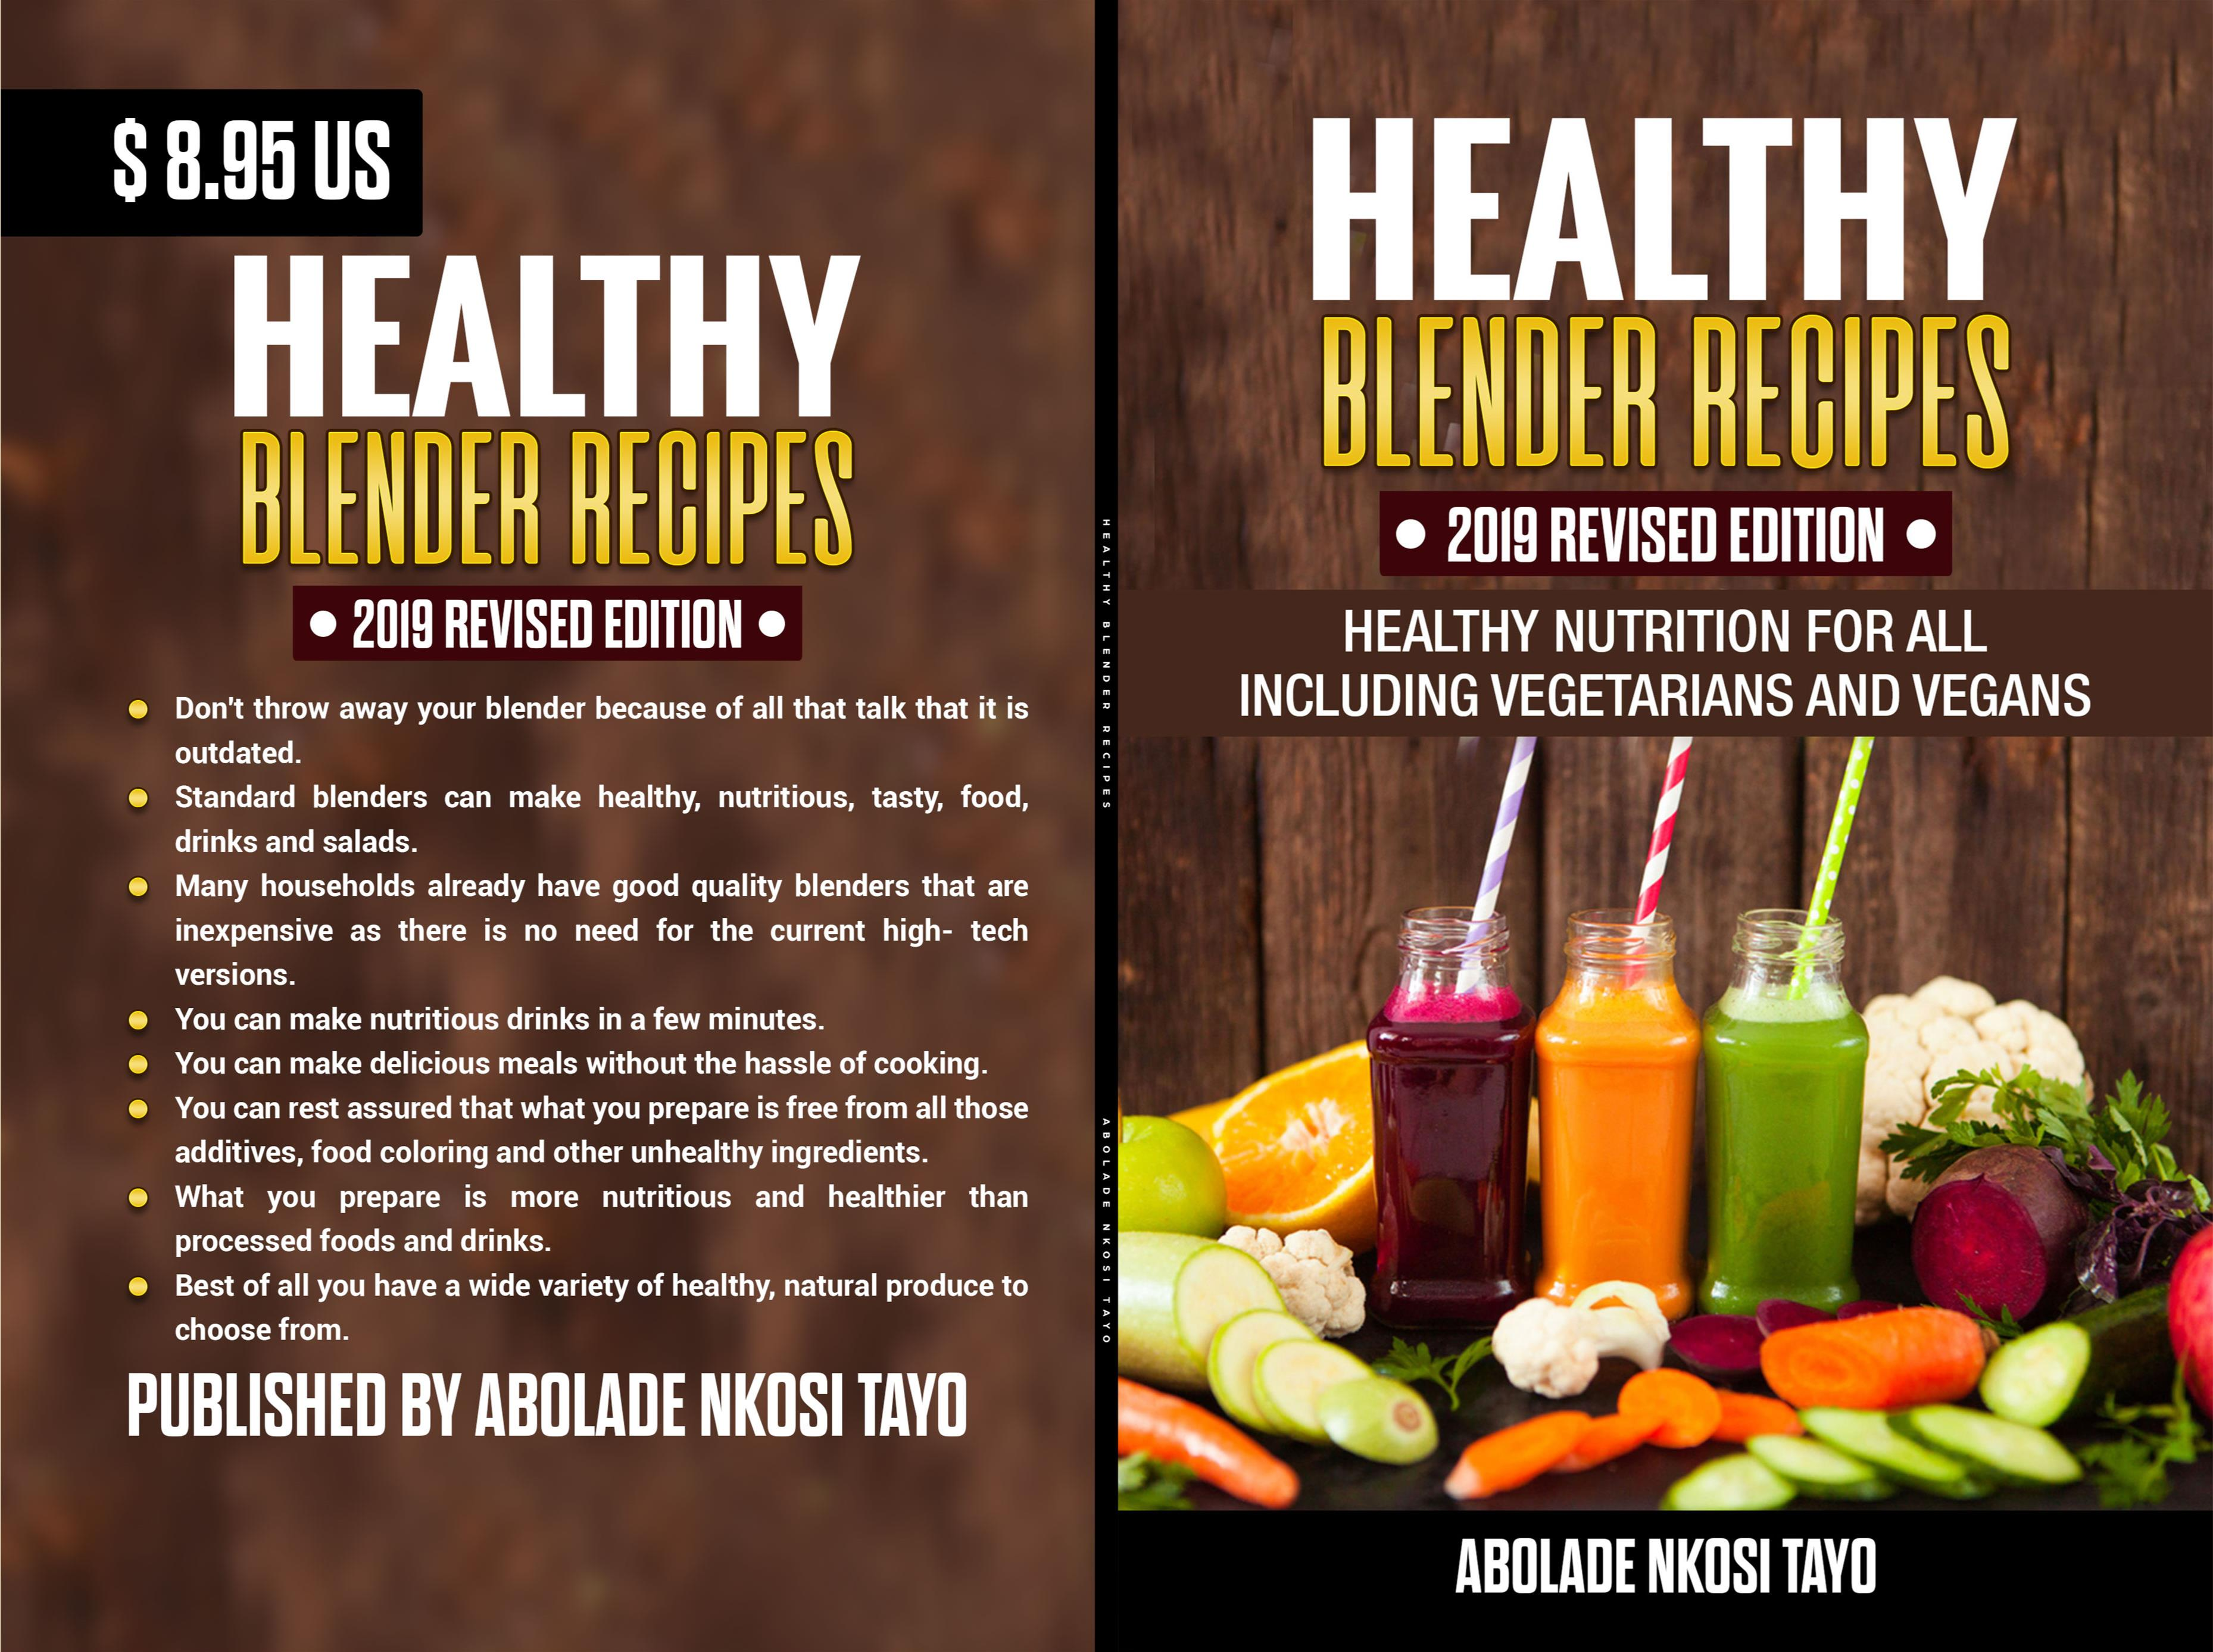 HEALTHY BLENDER RECIPES 2019 REVISED EDITION cover image